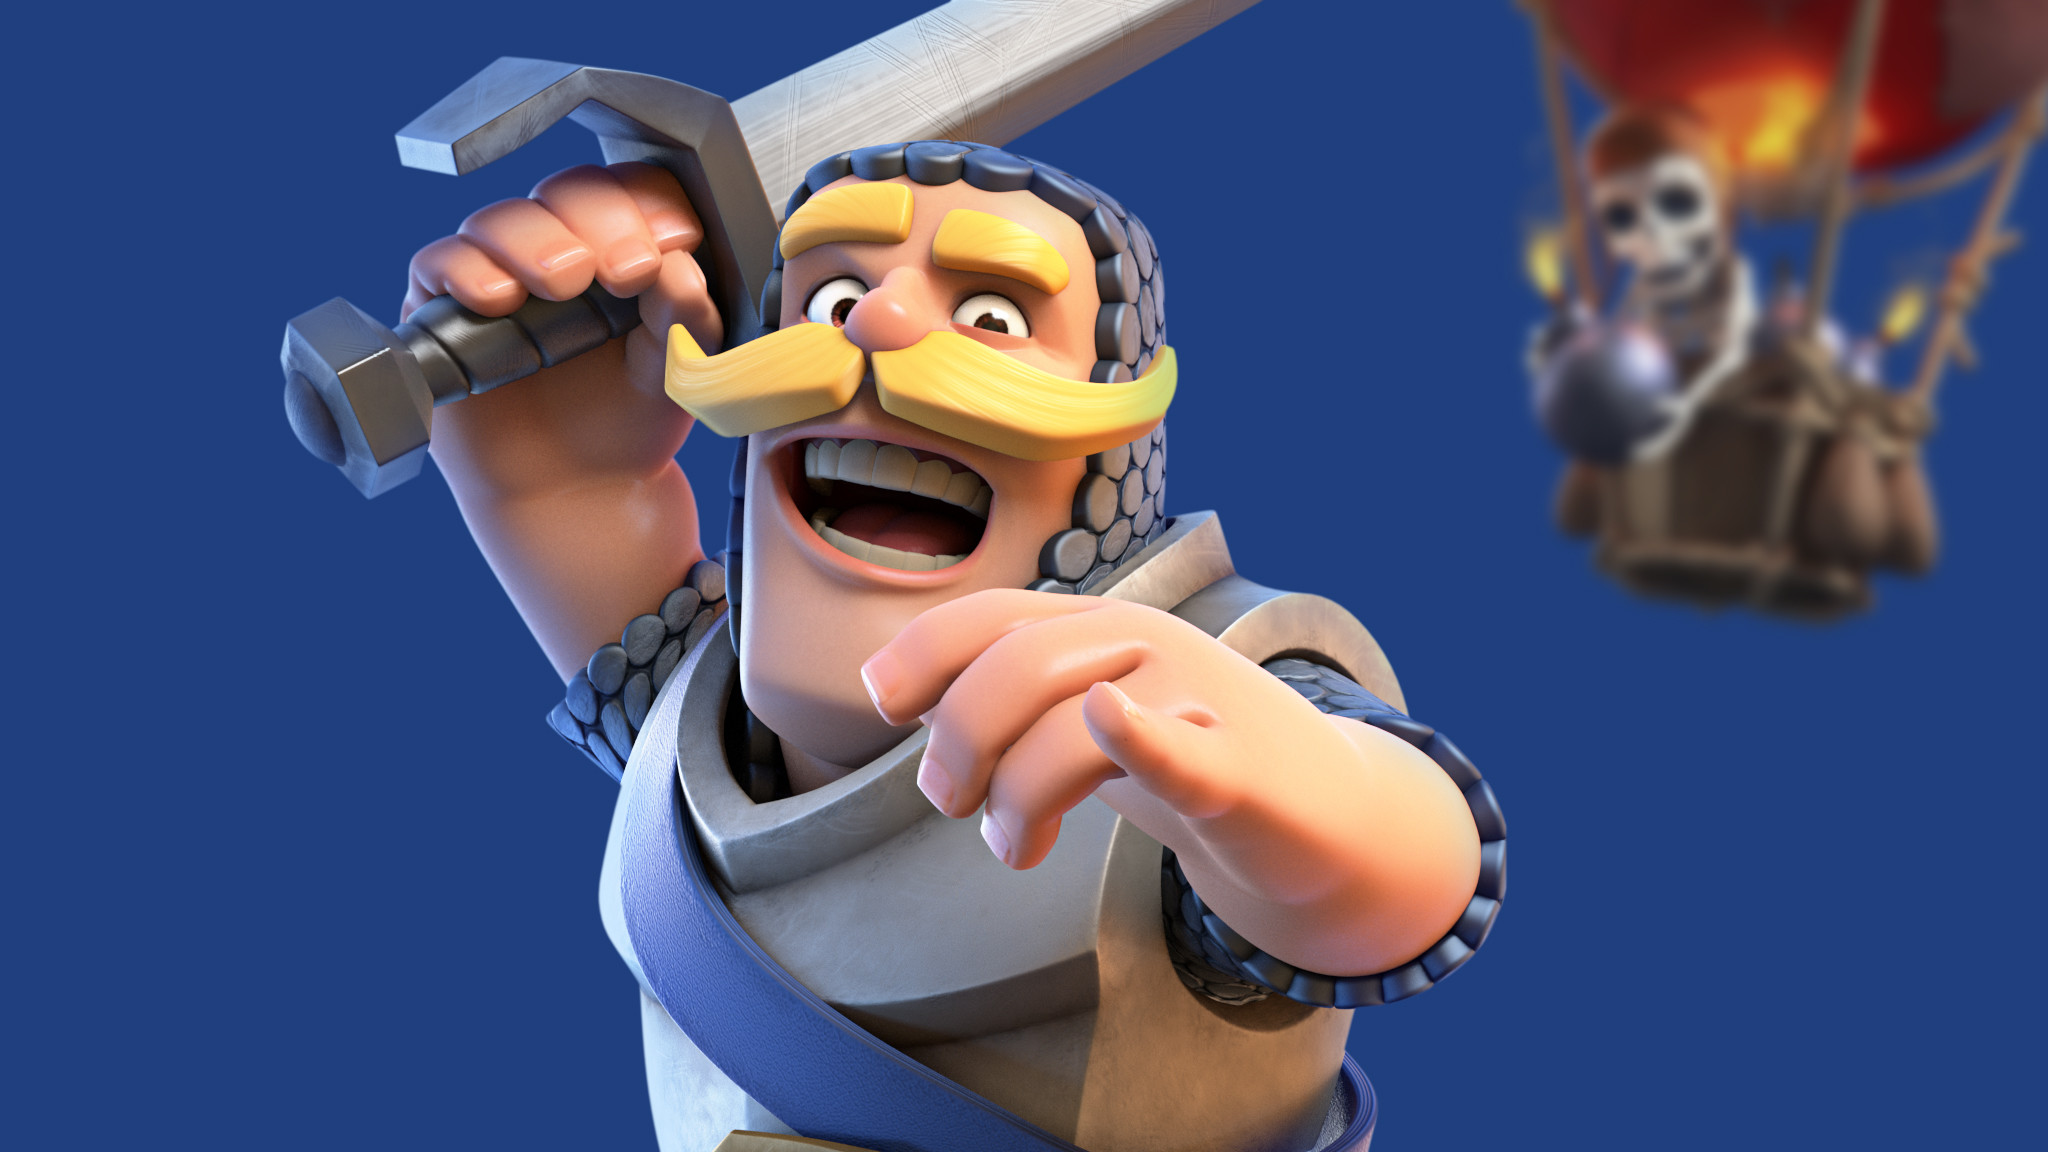 2048x1152 Clash Royale, Wallpapers, Art, Wall Papers, Kunst, Performing Arts, Art  Supplies, Tapestries, Backdrops